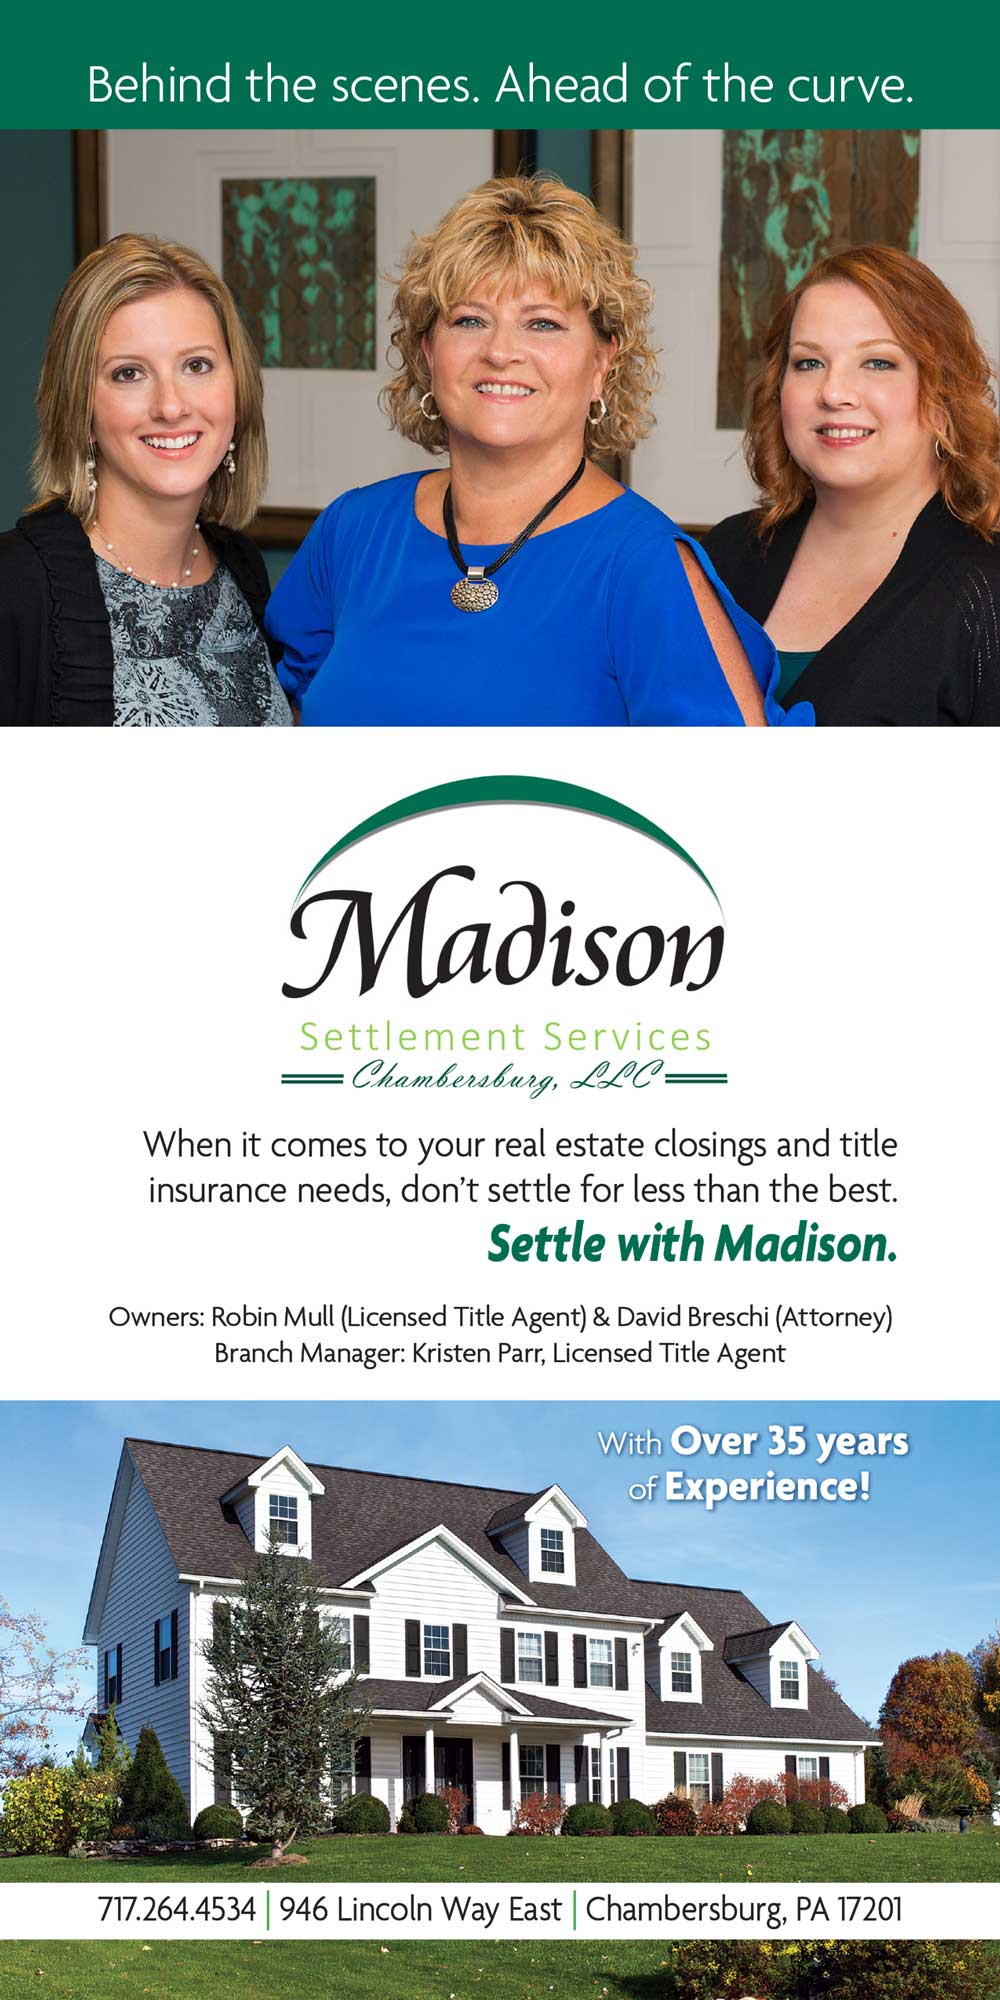 """<center>Madison Settlement Services Chambersburg, LLC   <b><a href=""""https://madisonsettlements.com"""" target=""""_blank"""" rel=""""noopener noreferrer"""">CLICK HERE to view the website</a></b></center>"""